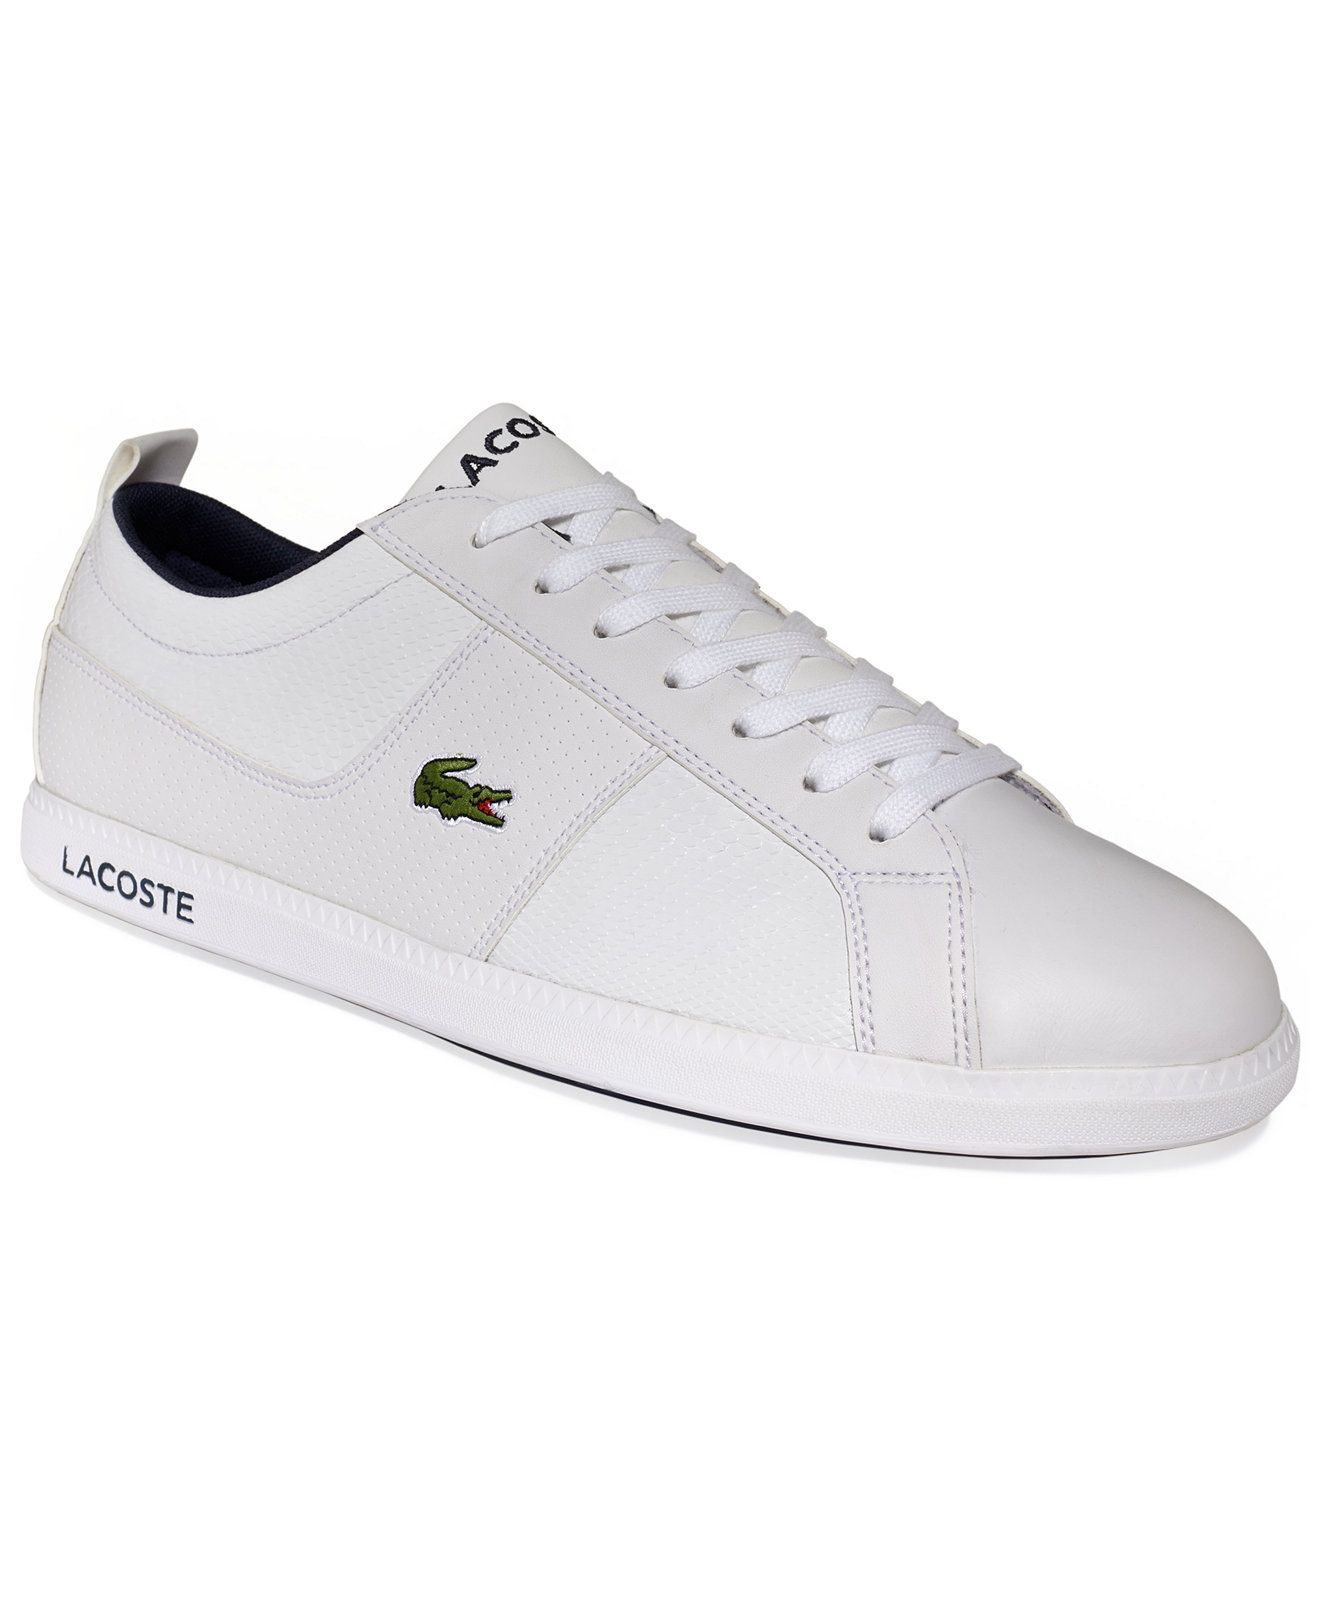 f4ad8e25a93 Lacoste Men's Shoes, Observe CA Sneakers - Sneakers & Athletic - Men -  Macy's